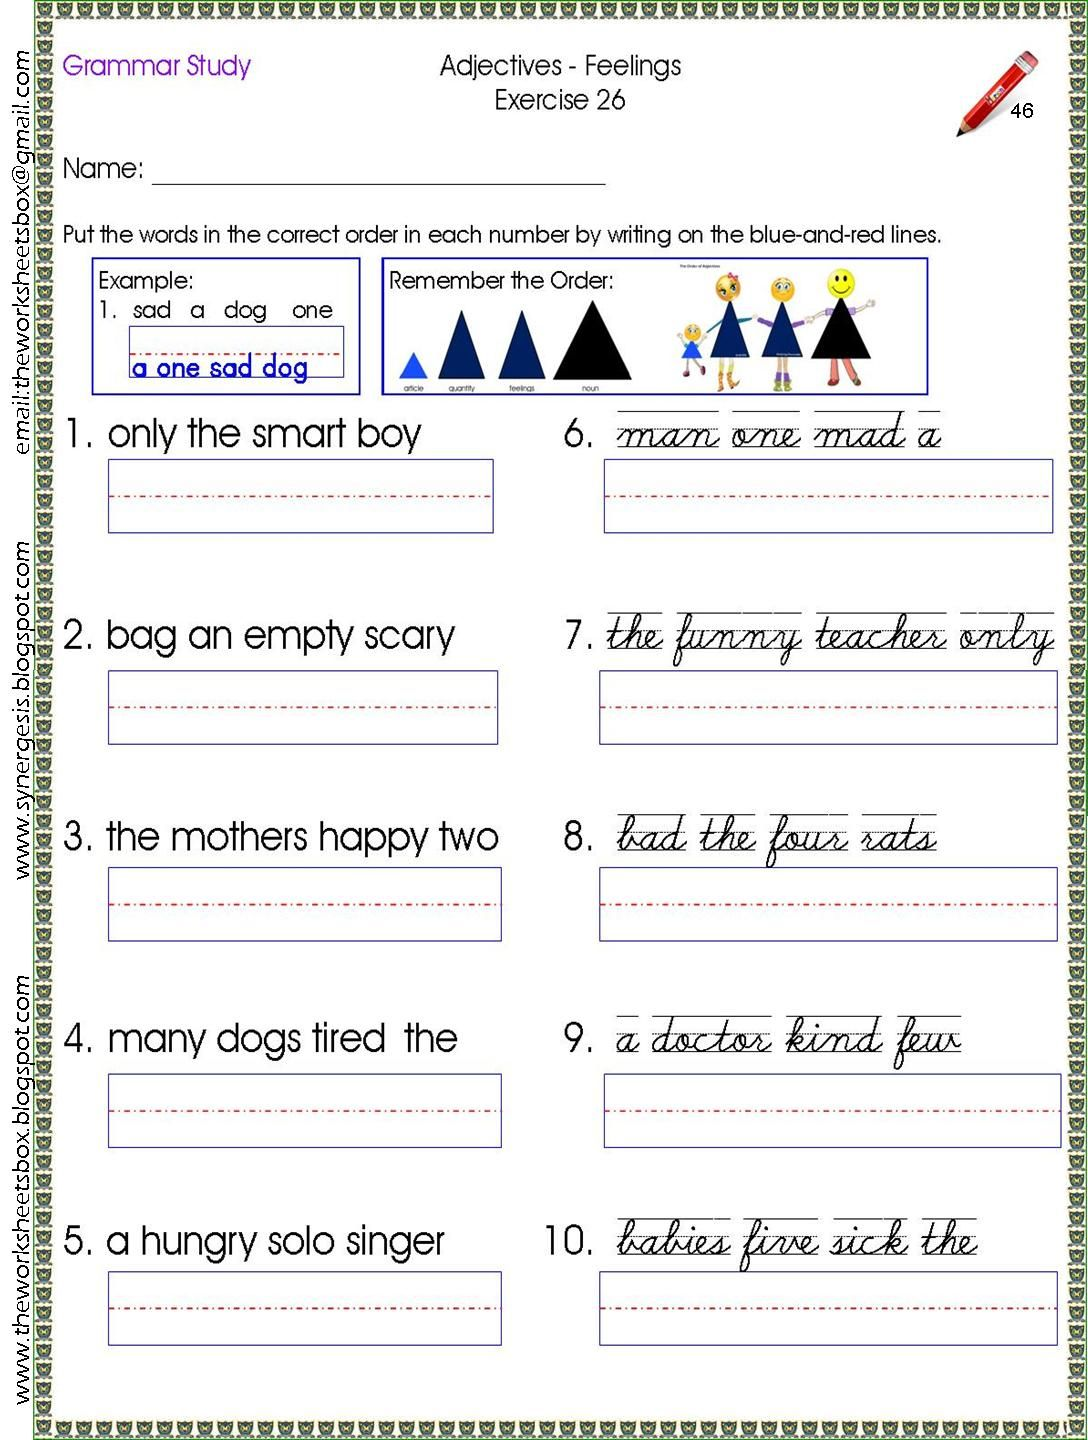 Sample Worksheet For The Order Of The Noun Family Study Get A Copy At